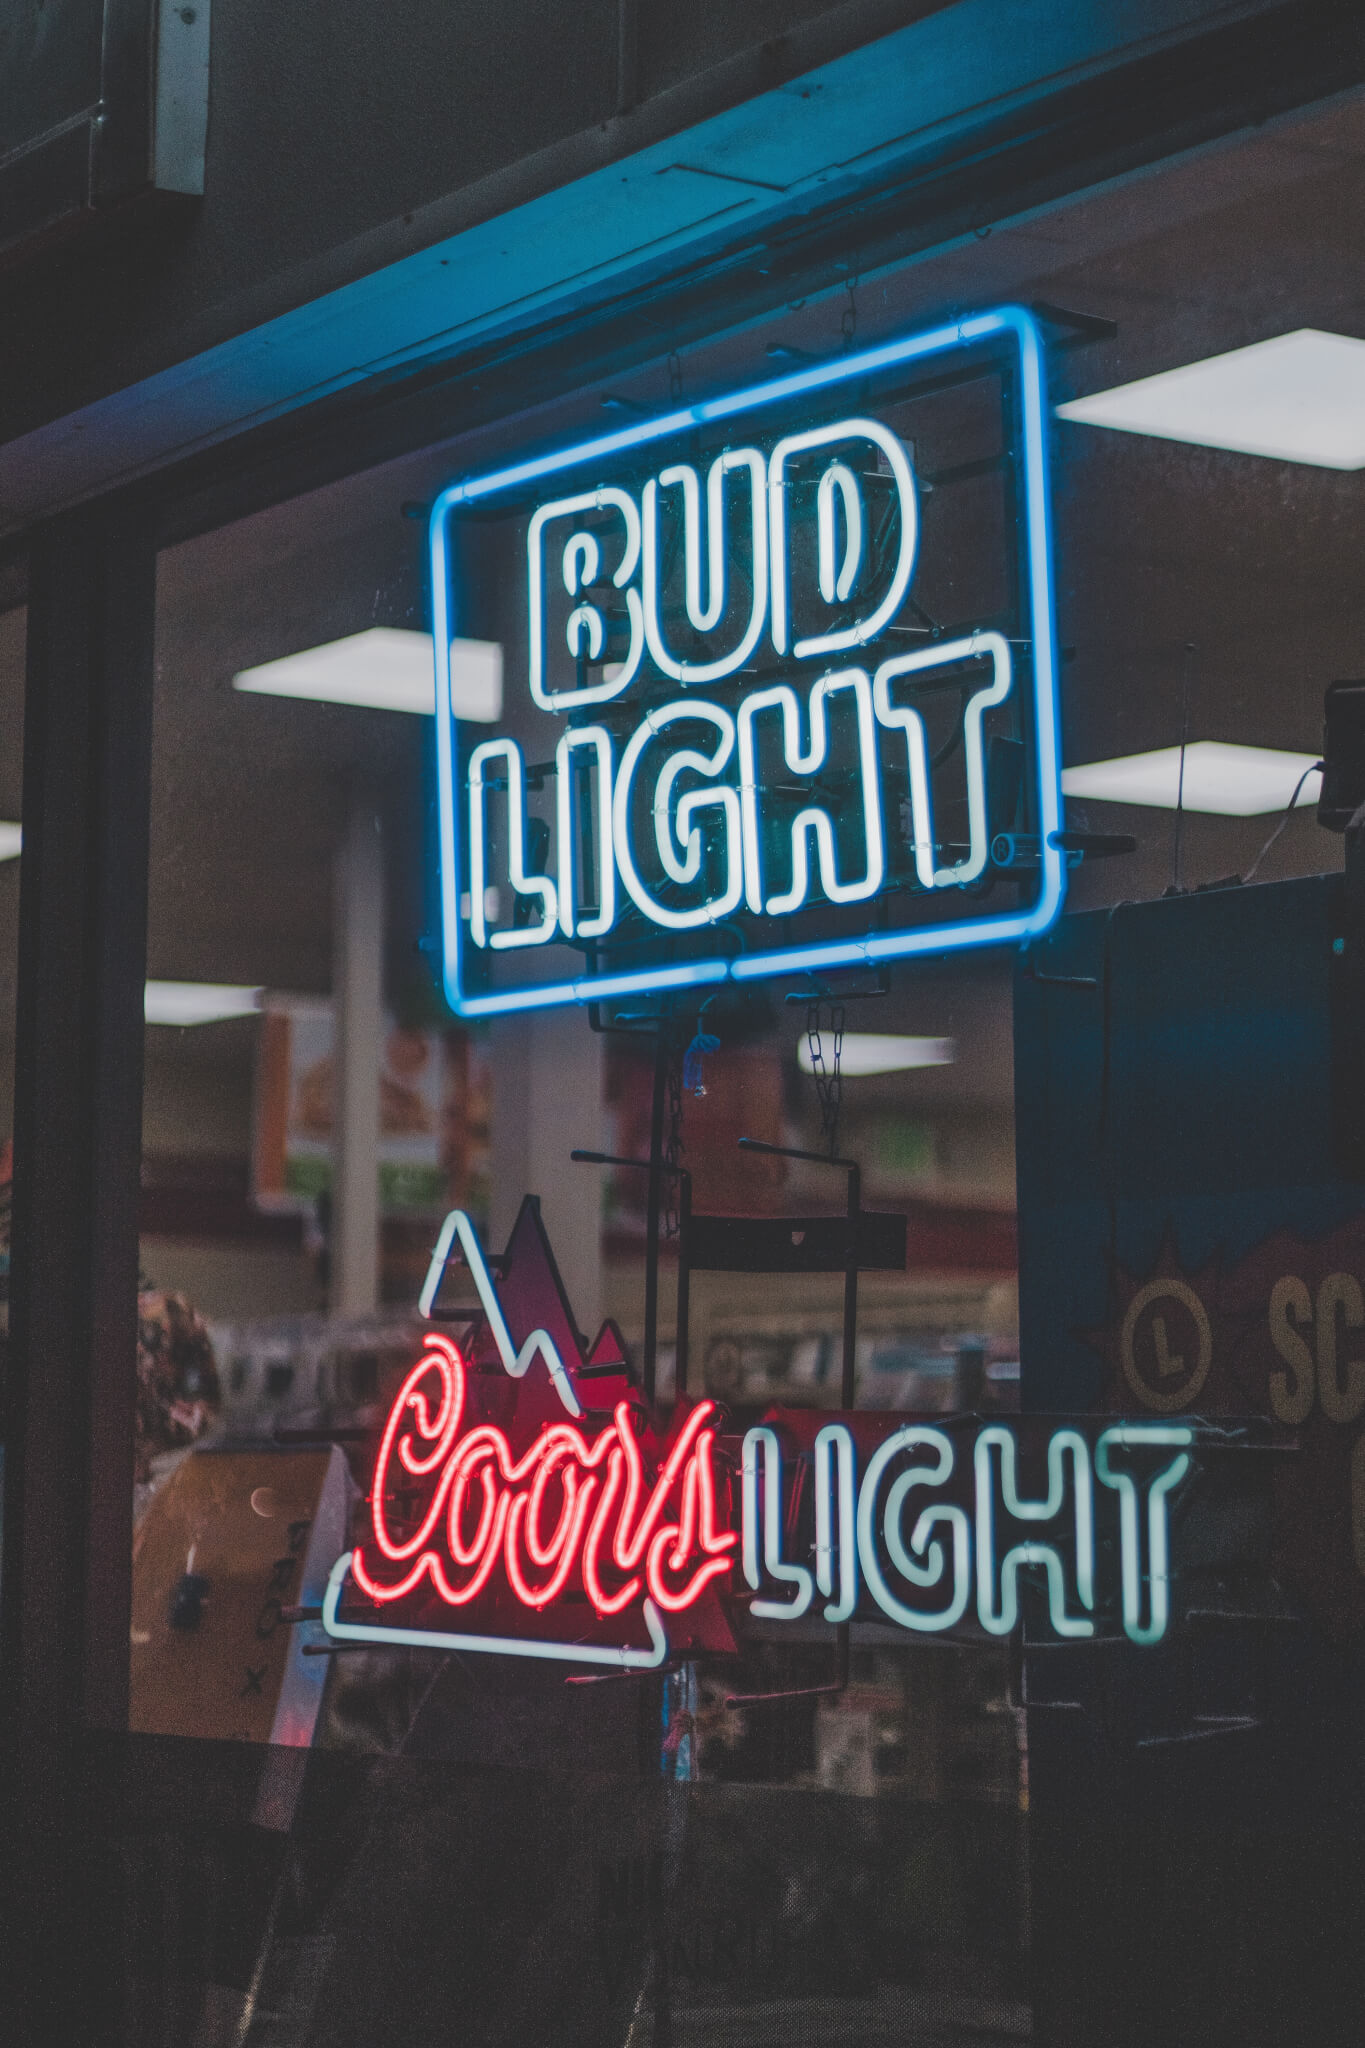 Bud Light / Coors Light